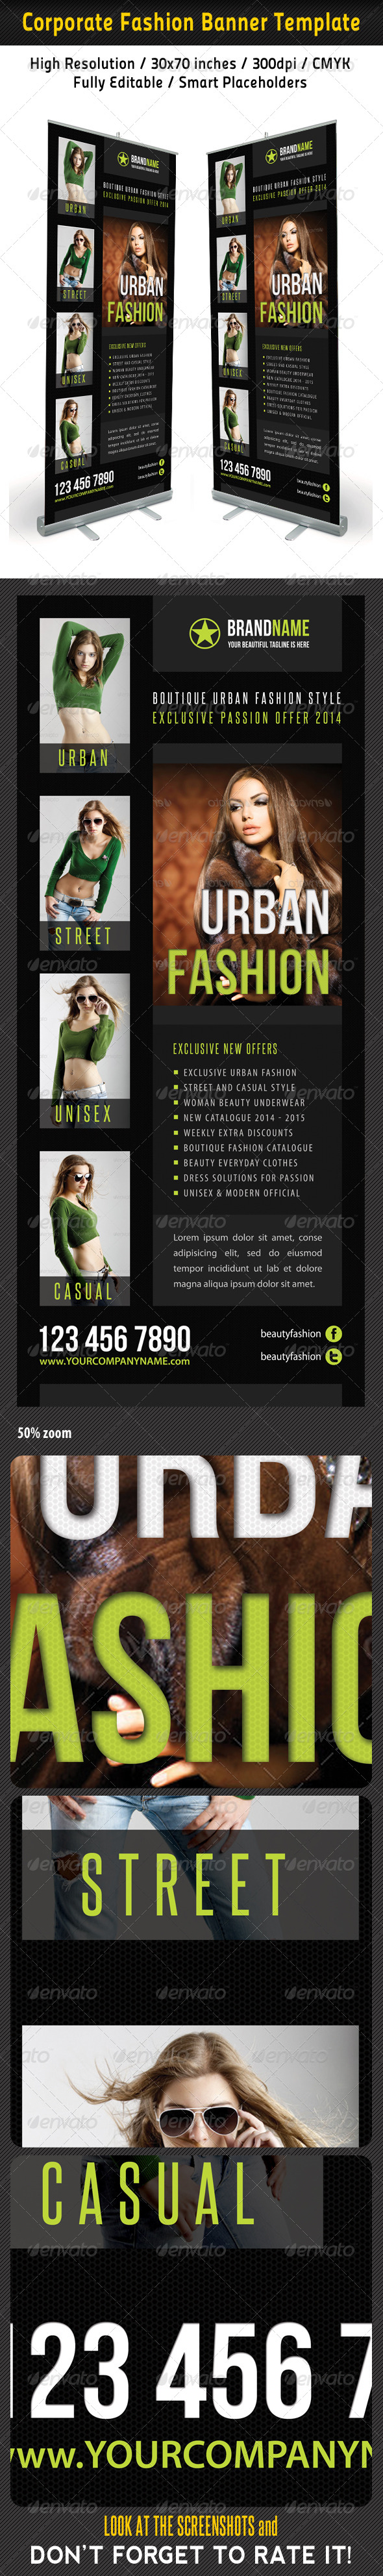 Fashion Multipurpose Banner Template 30 - Signage Print Templates